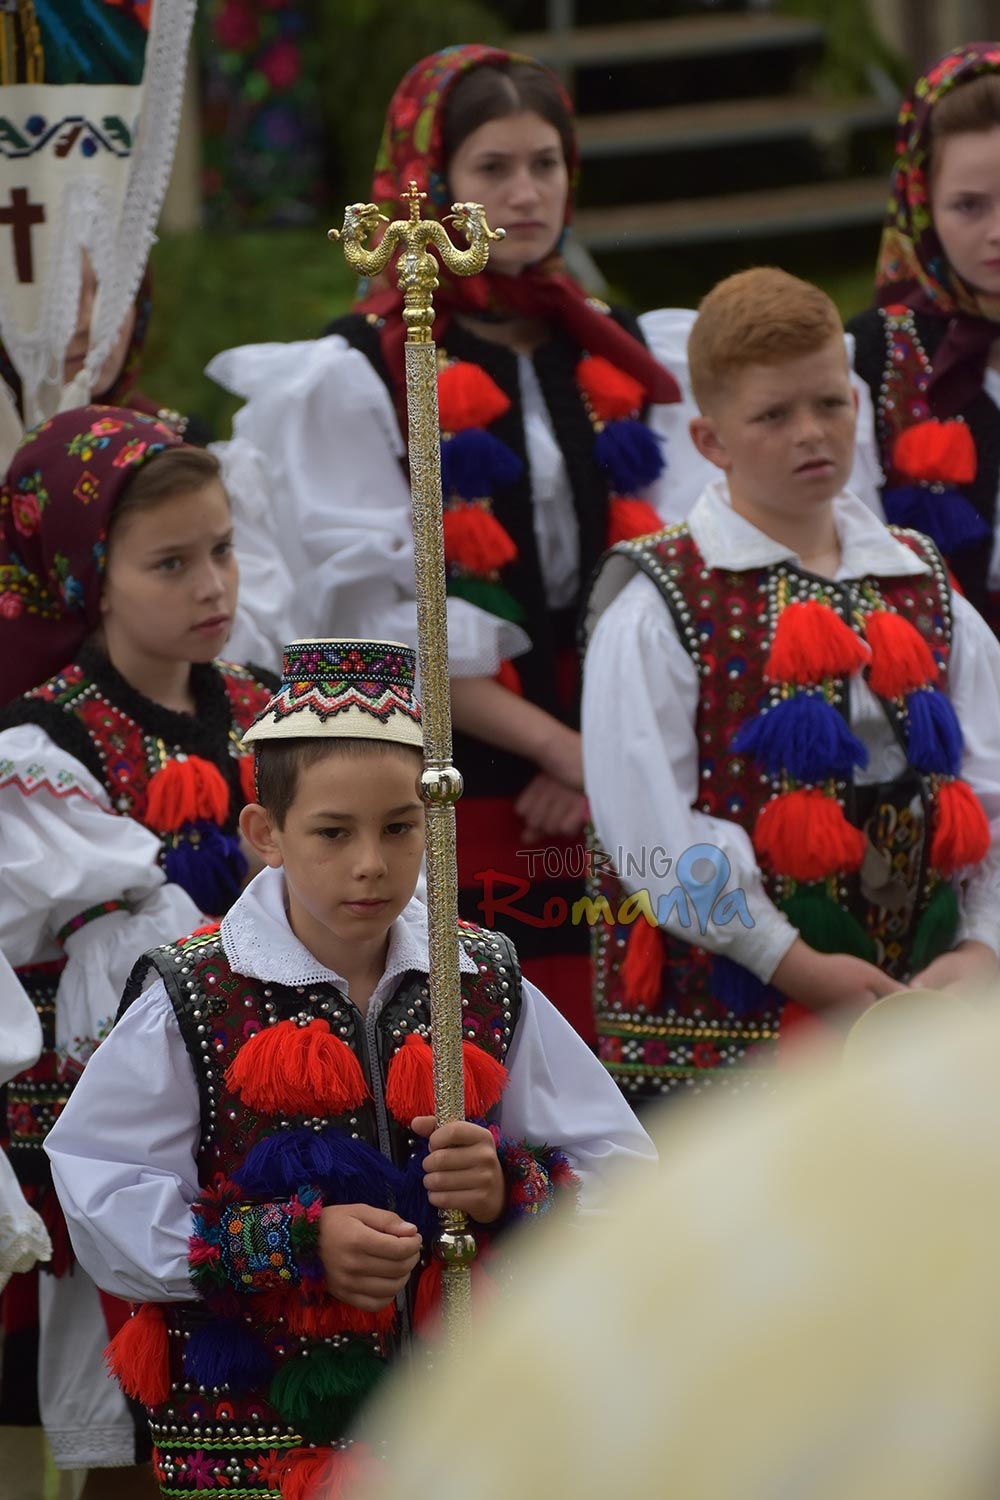 Maramures Traditions Private Guided Tour in Transylvania 9